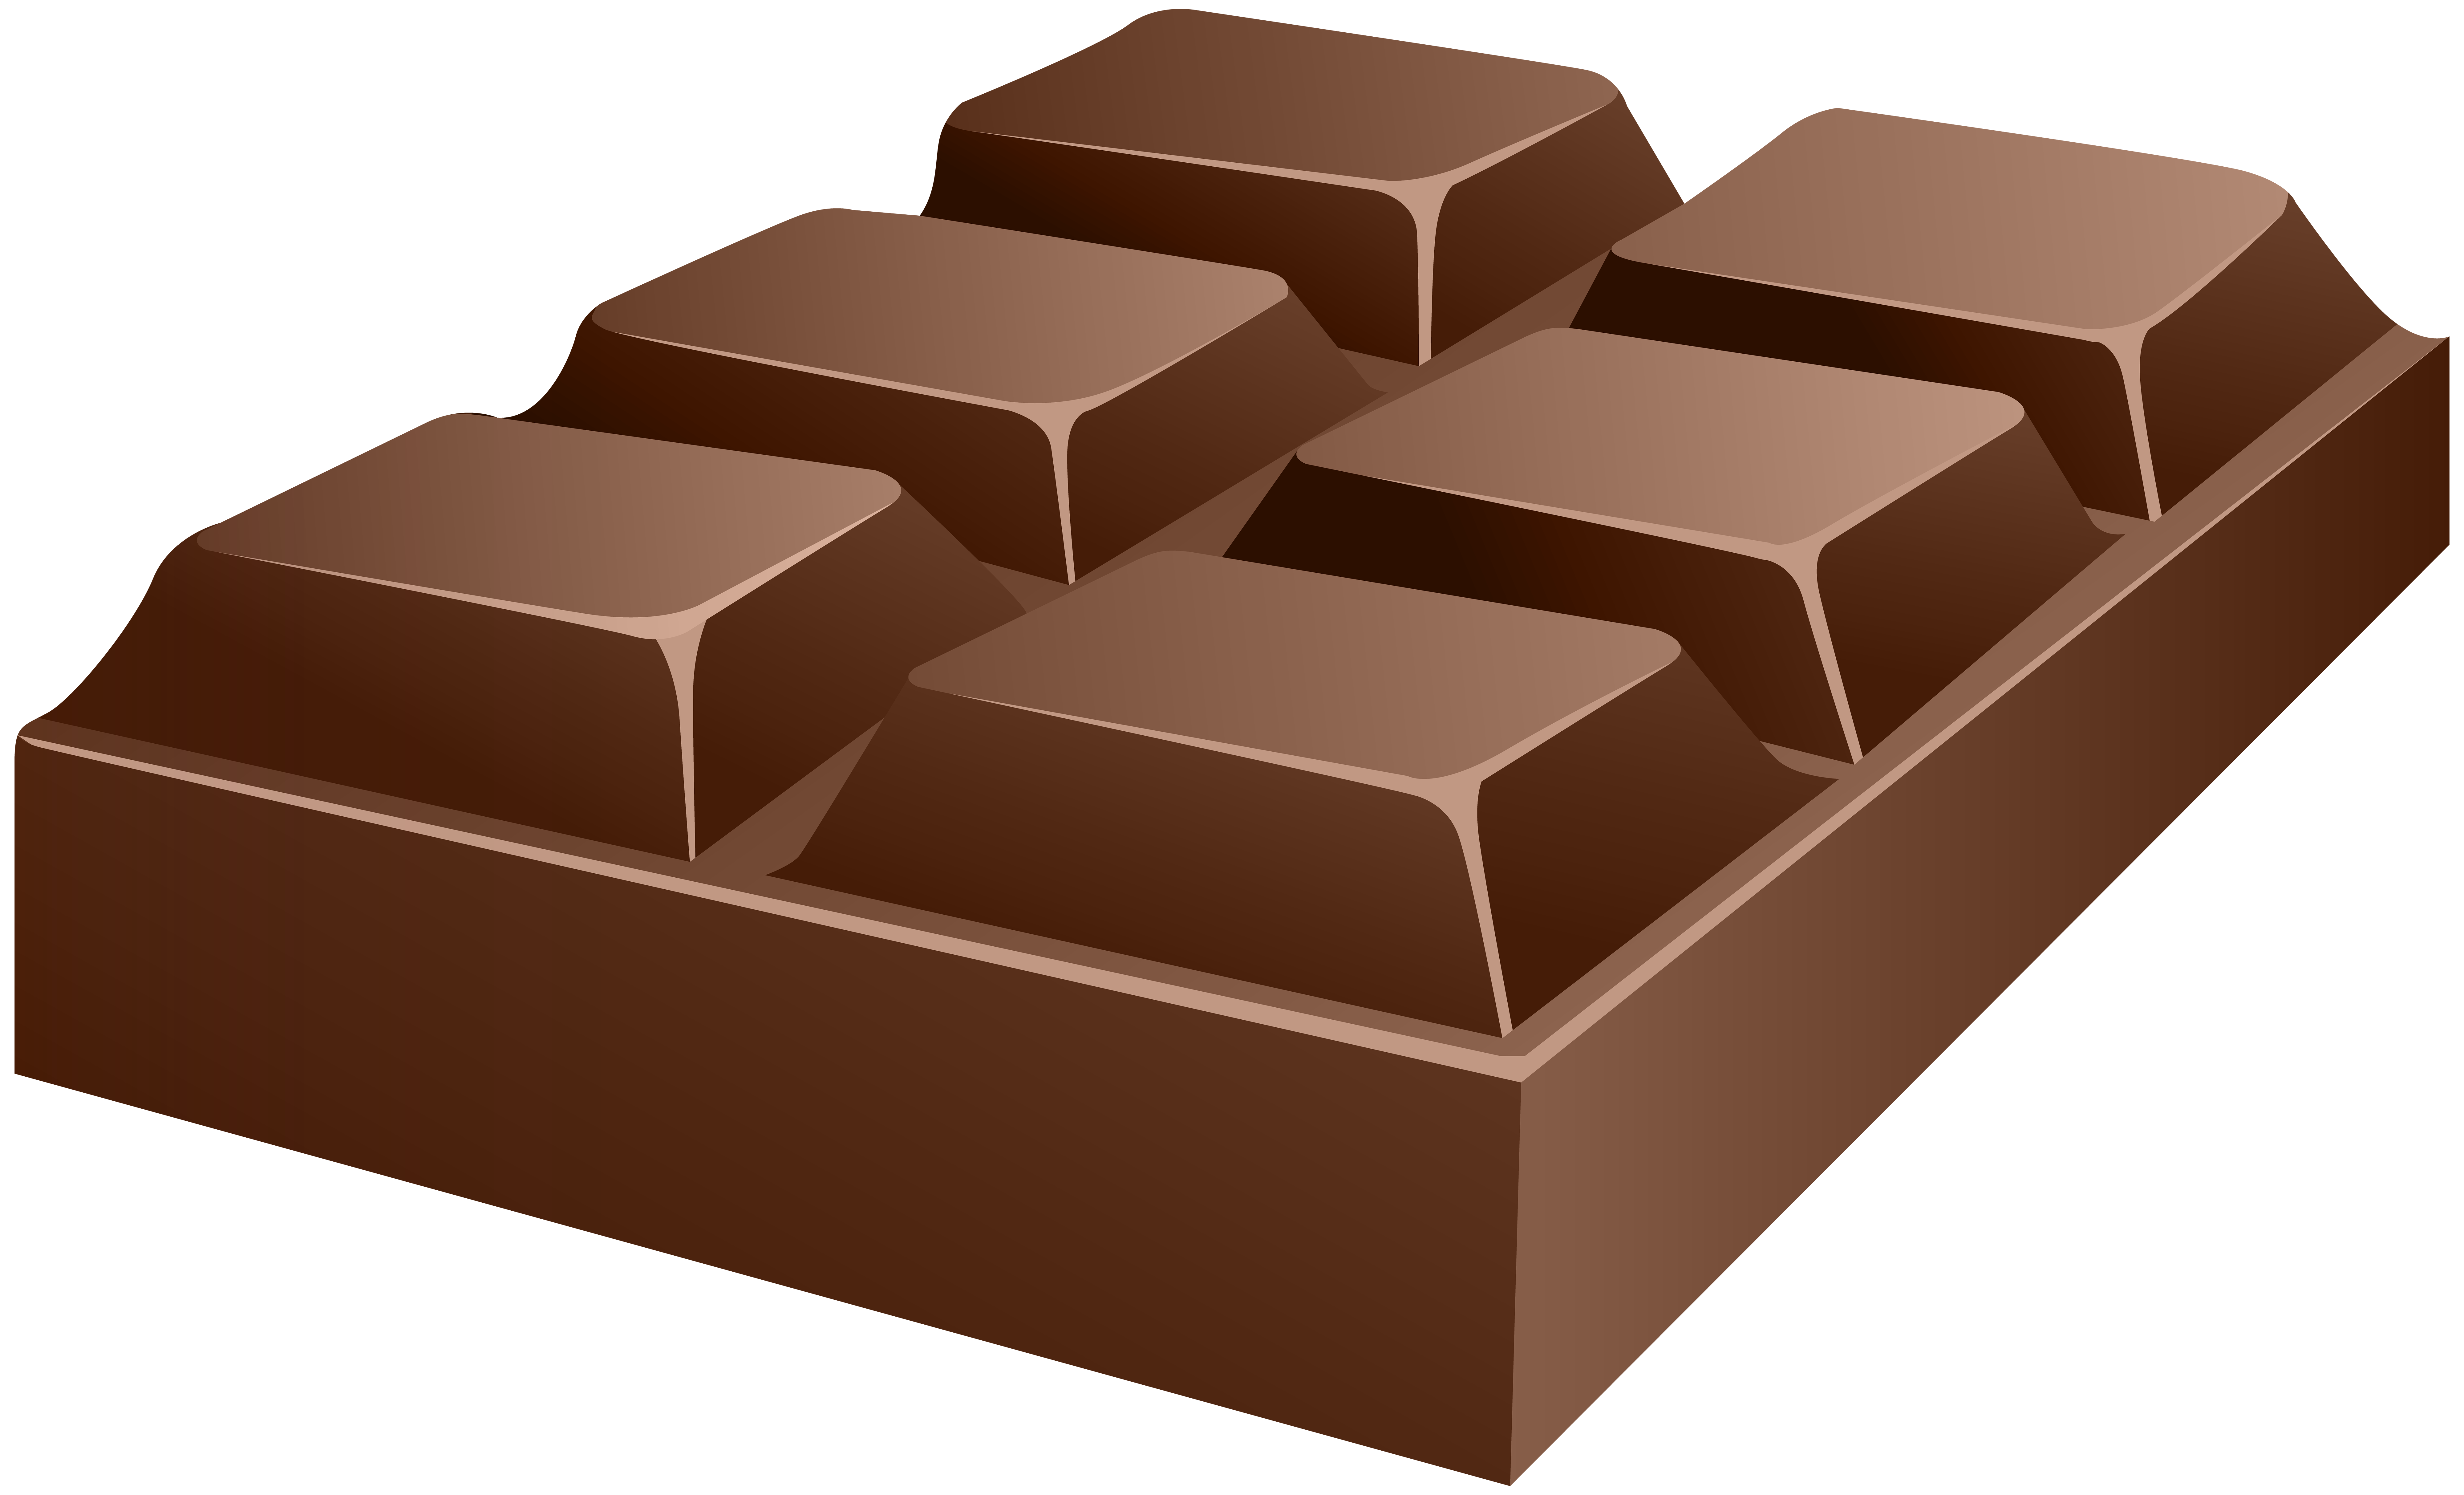 Chocolate PNG Clip Art Image.